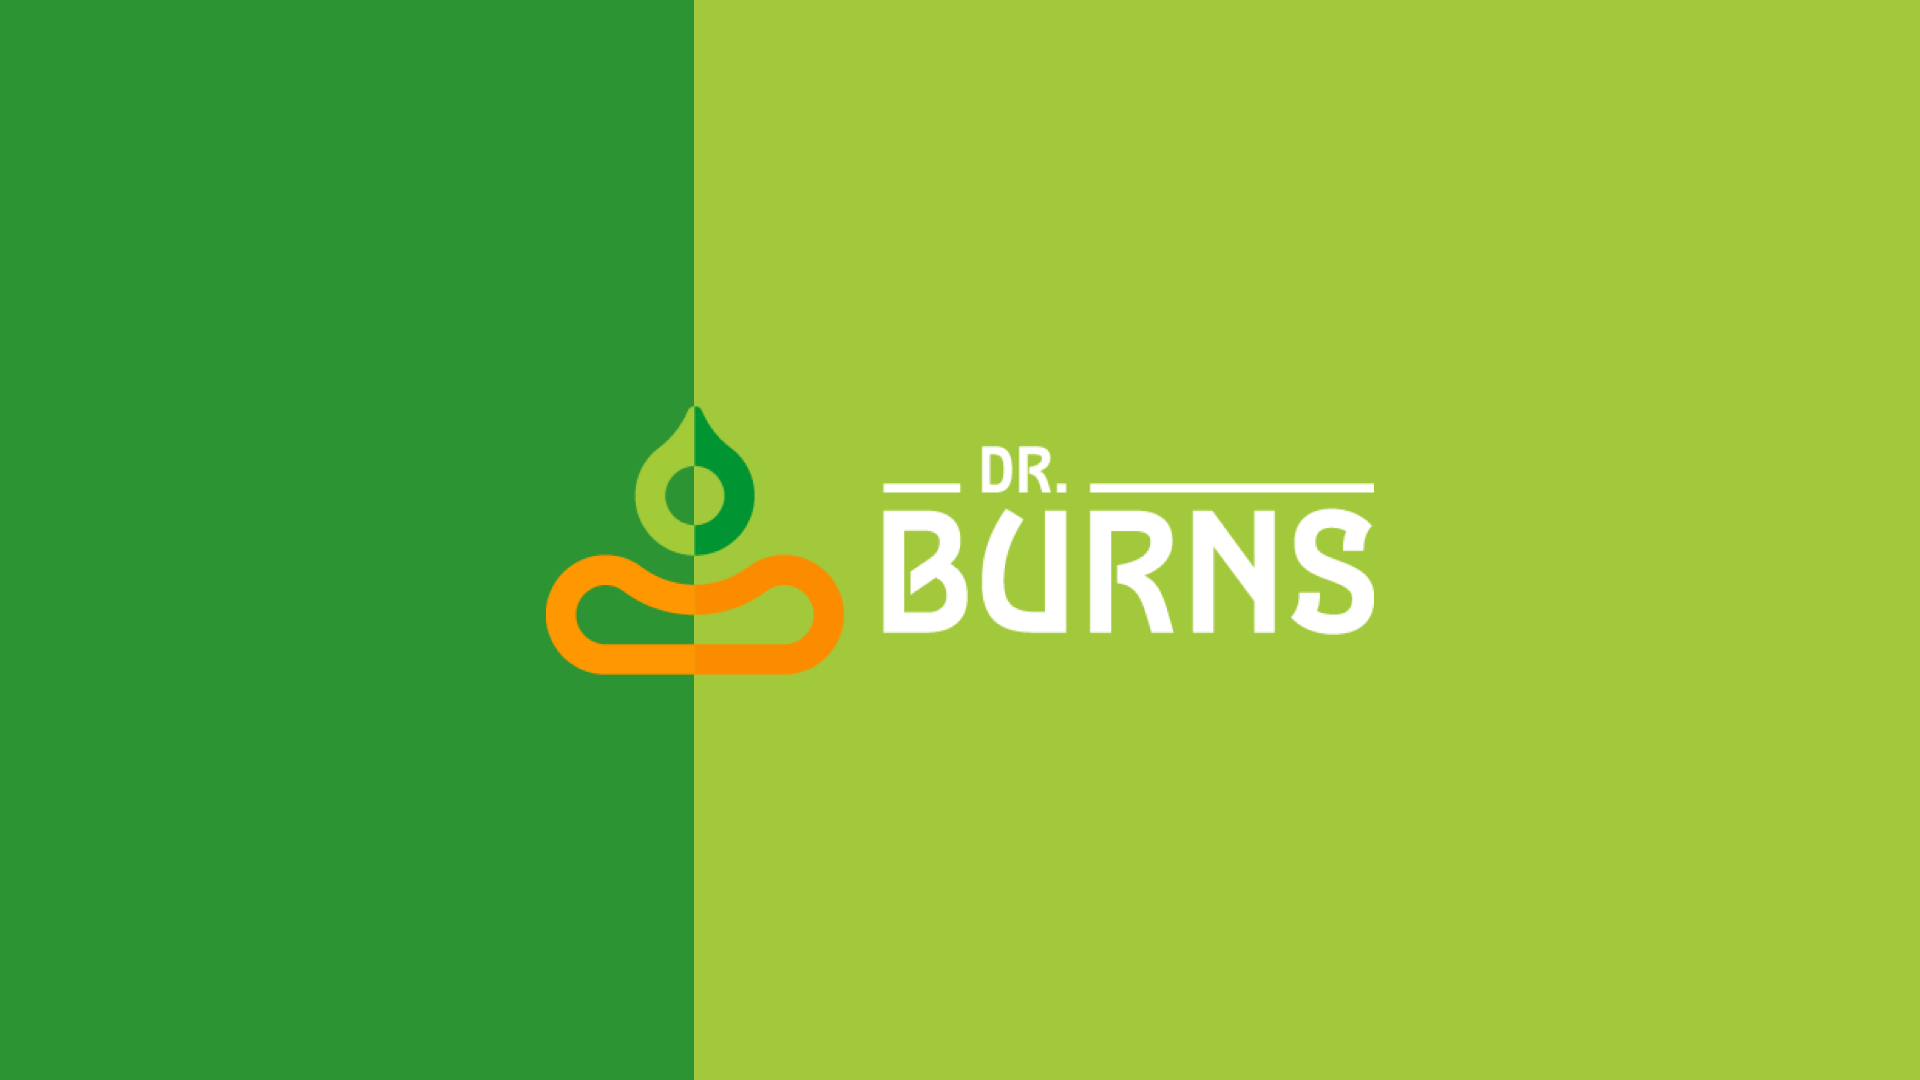 DR.Burns